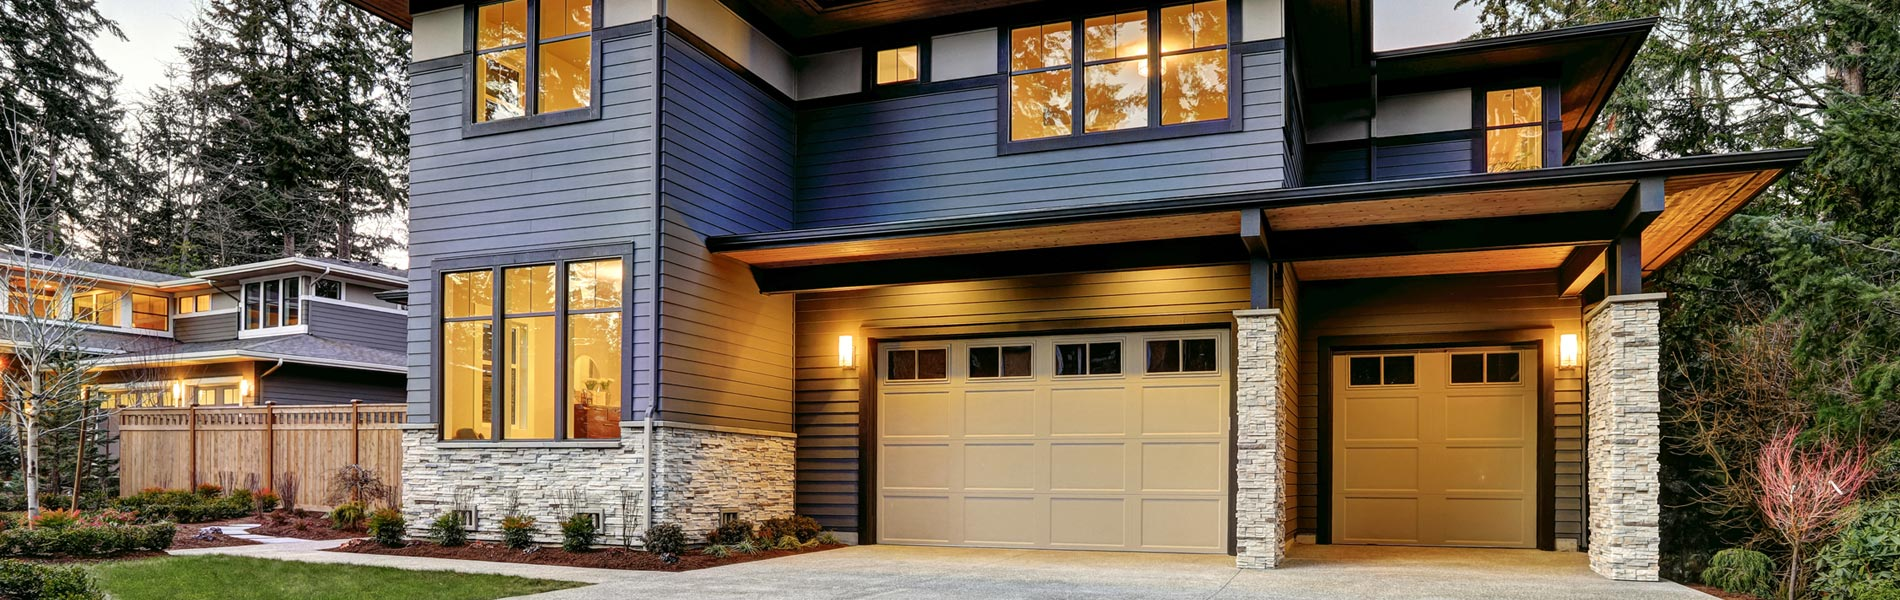 Community Garage Door Repair Service Laguna Hills, CA 949-432-7943